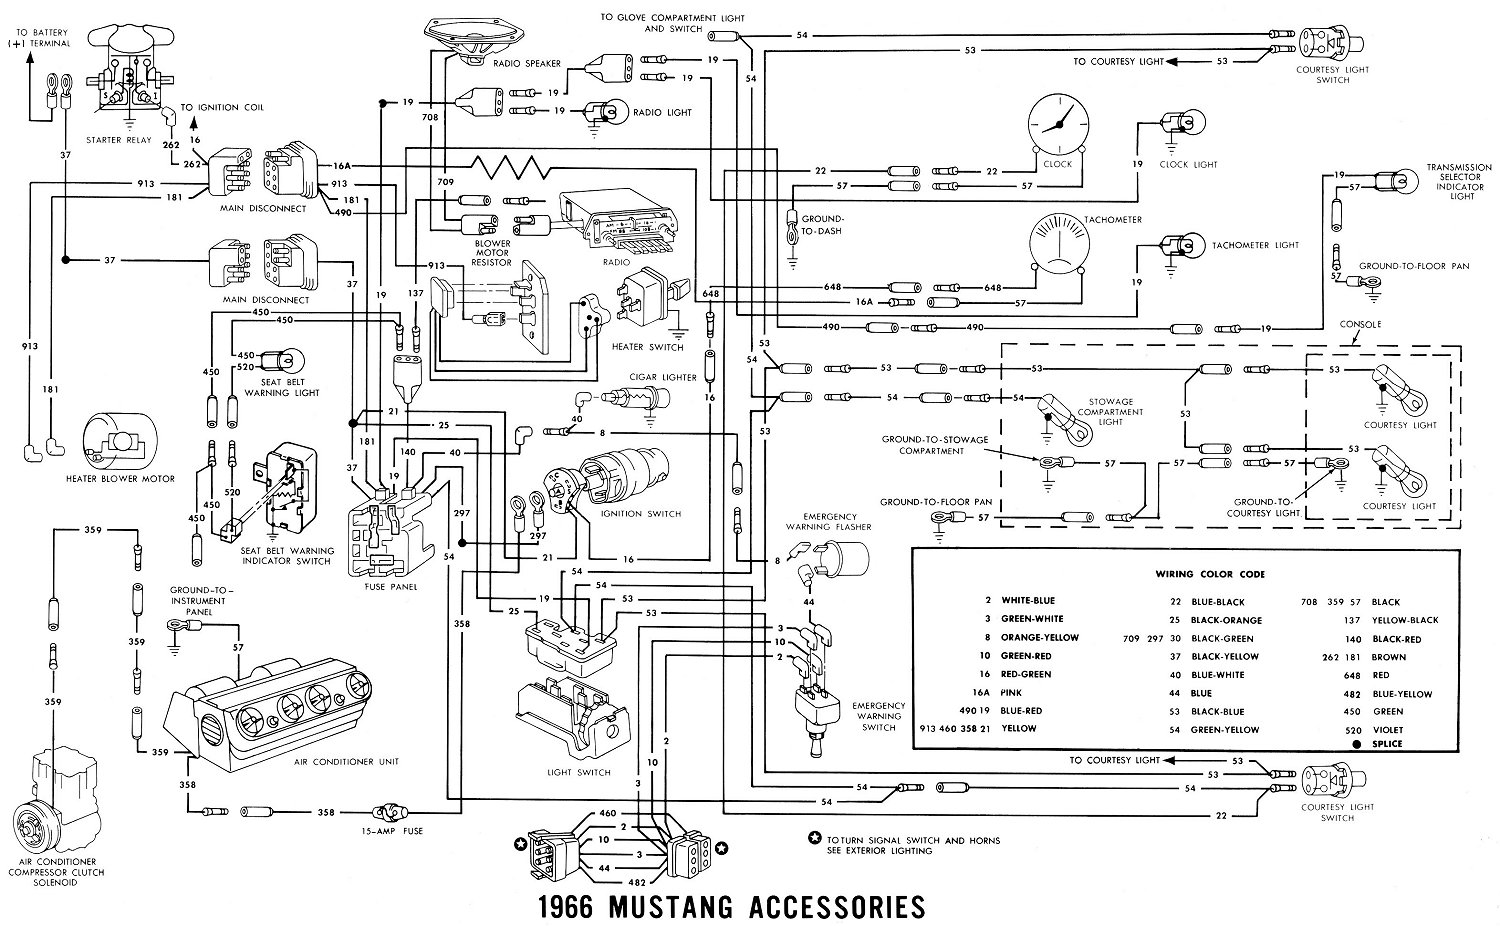 66acces1 1966 mustang wiring diagrams average joe restoration 65 mustang ignition wiring diagram at mifinder.co